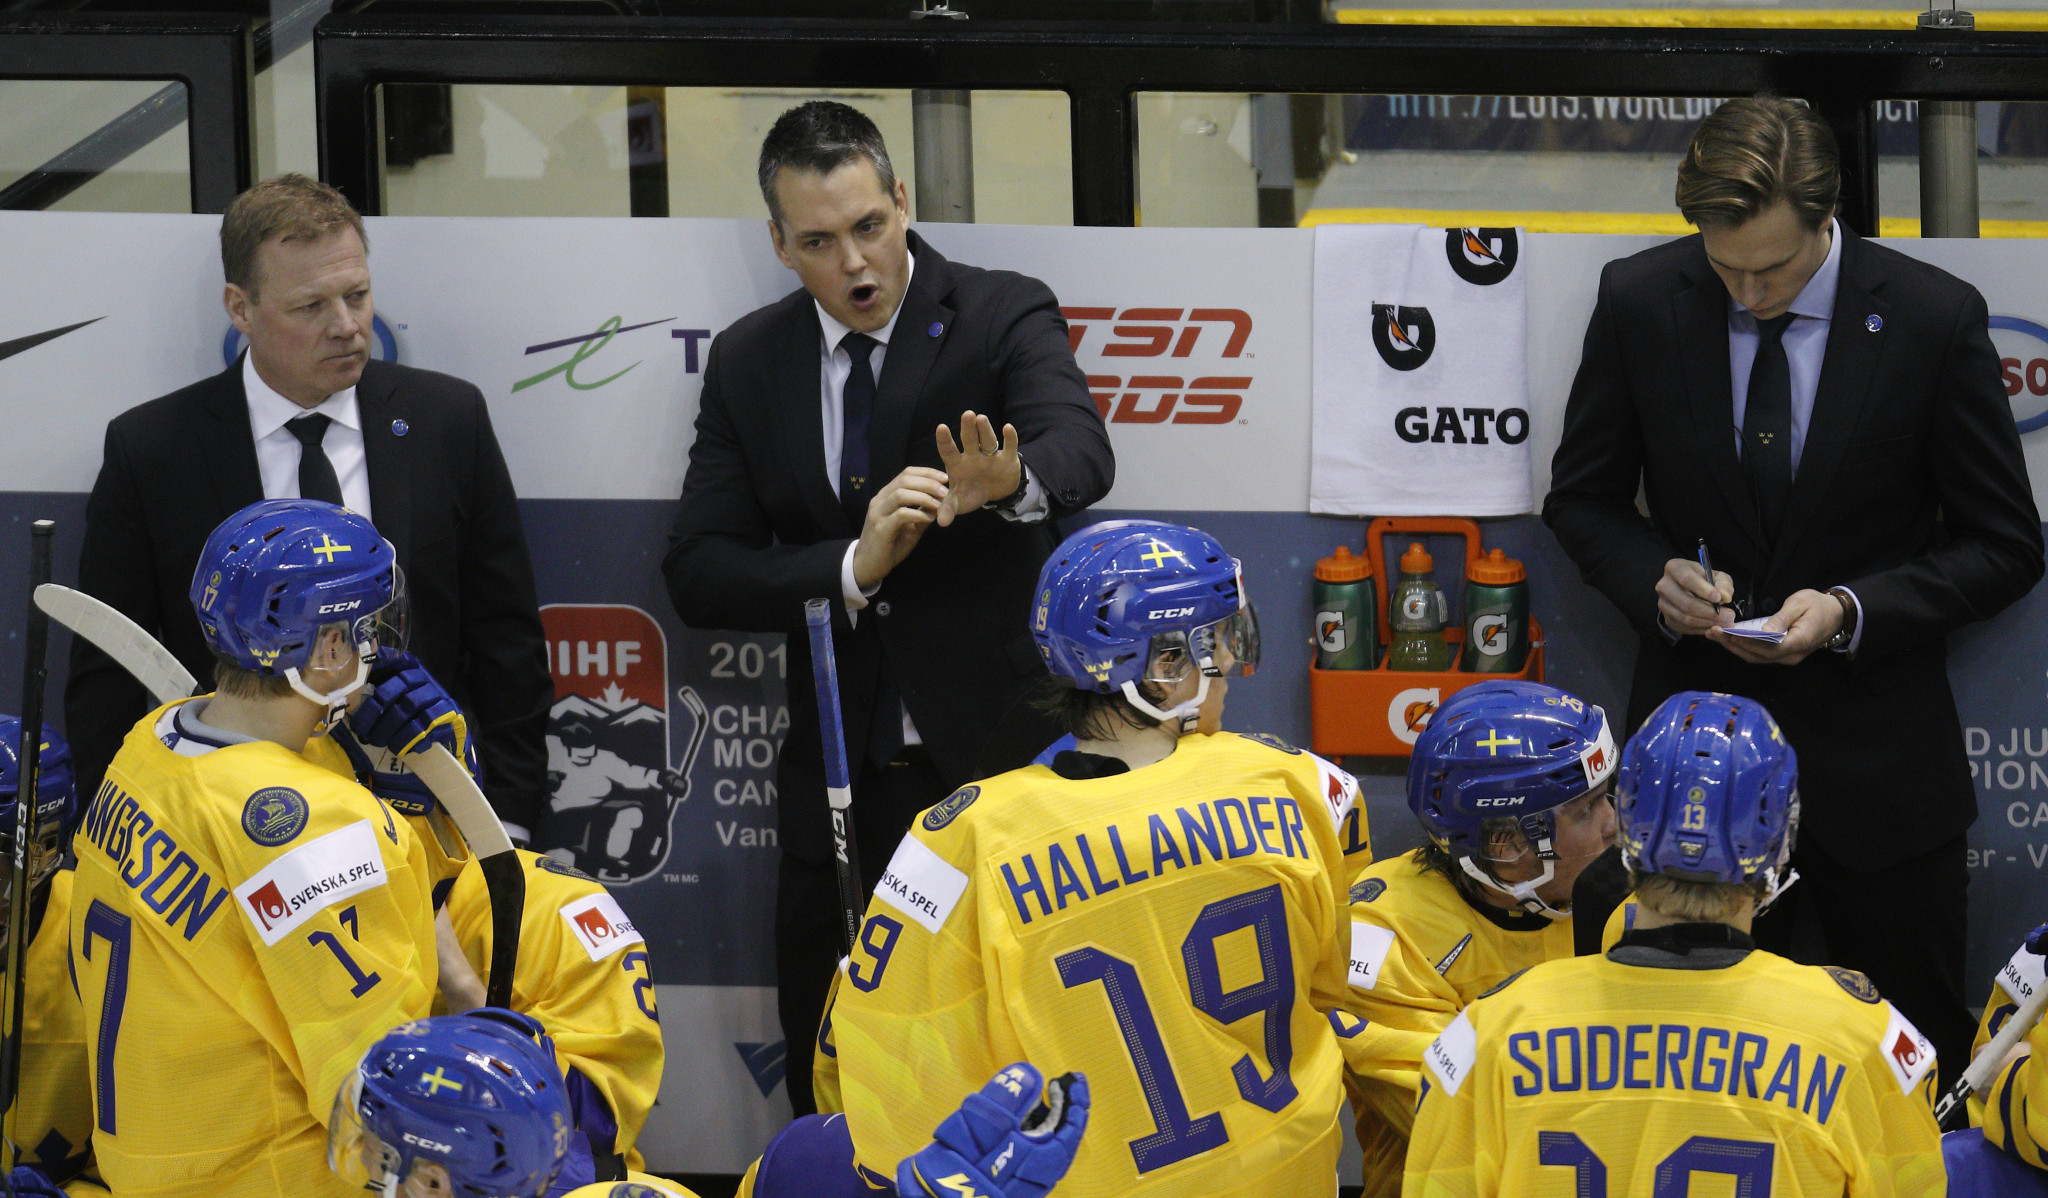 Several teams hit by positive COVID-19 tests ahead of IIHF World Junior Championship